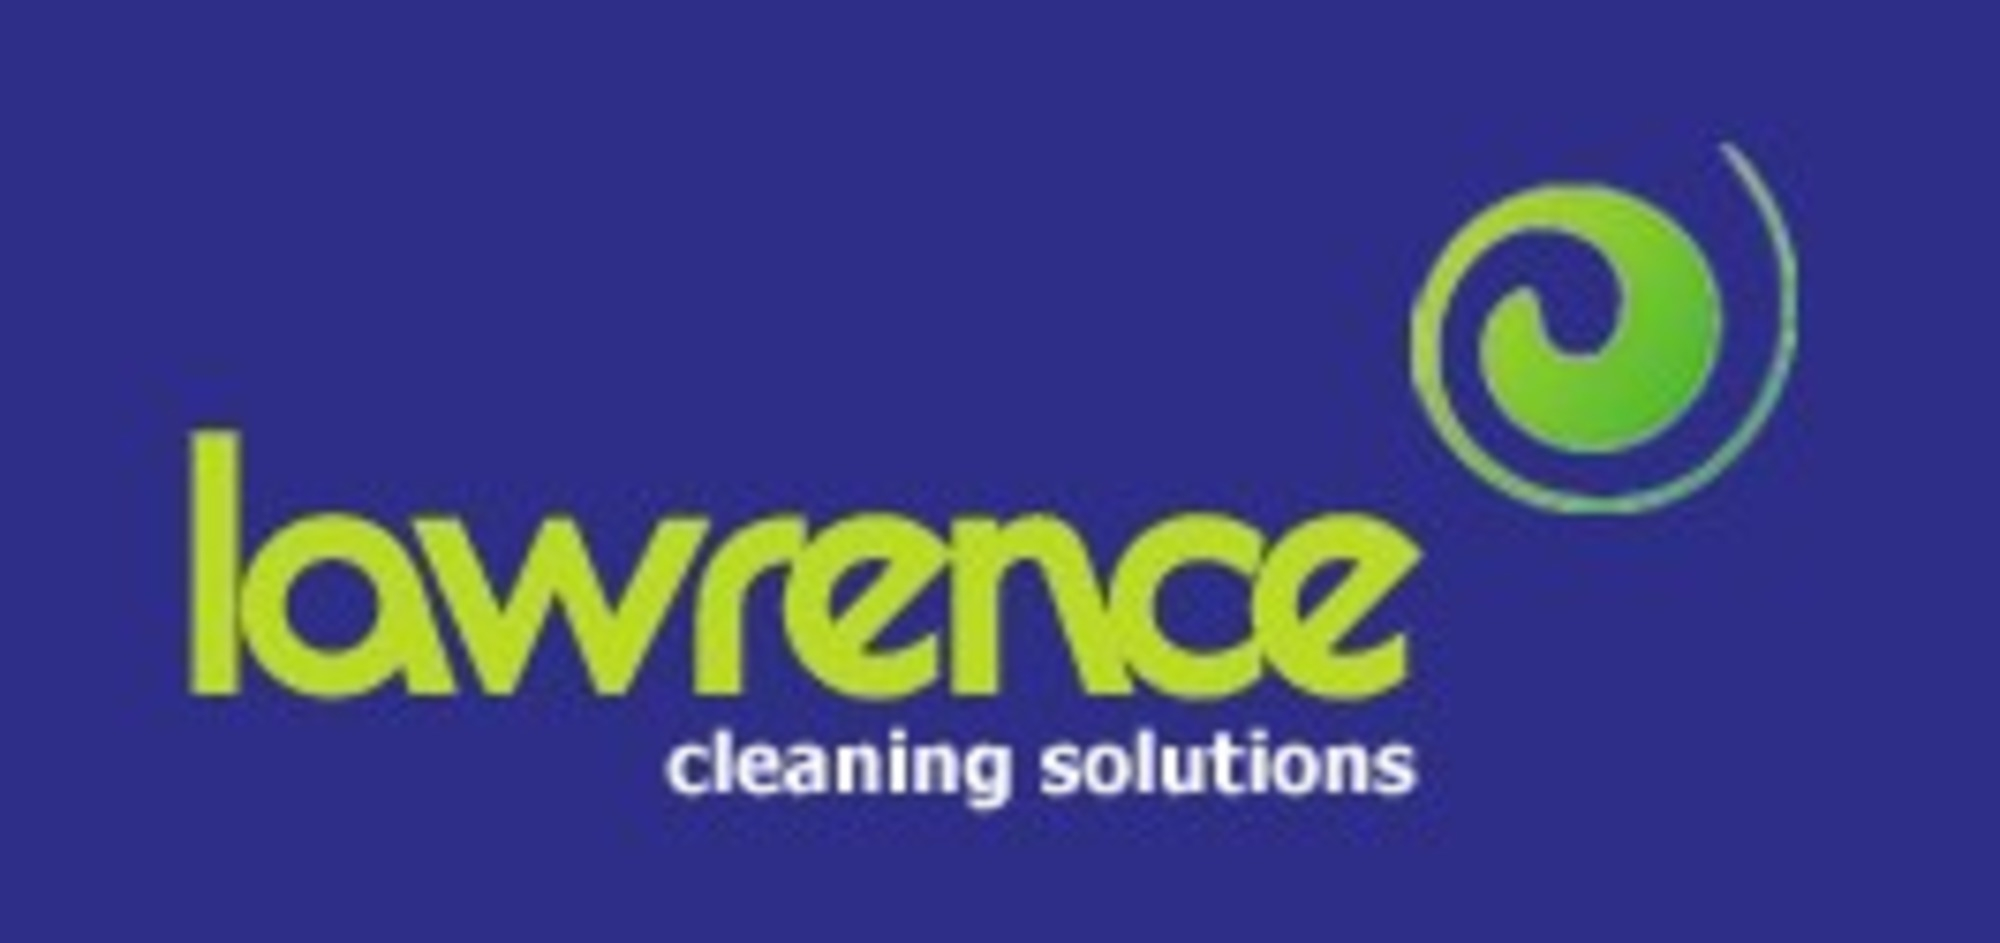 Lawrence Cleaning  (@lawrencecleaning) Cover Image